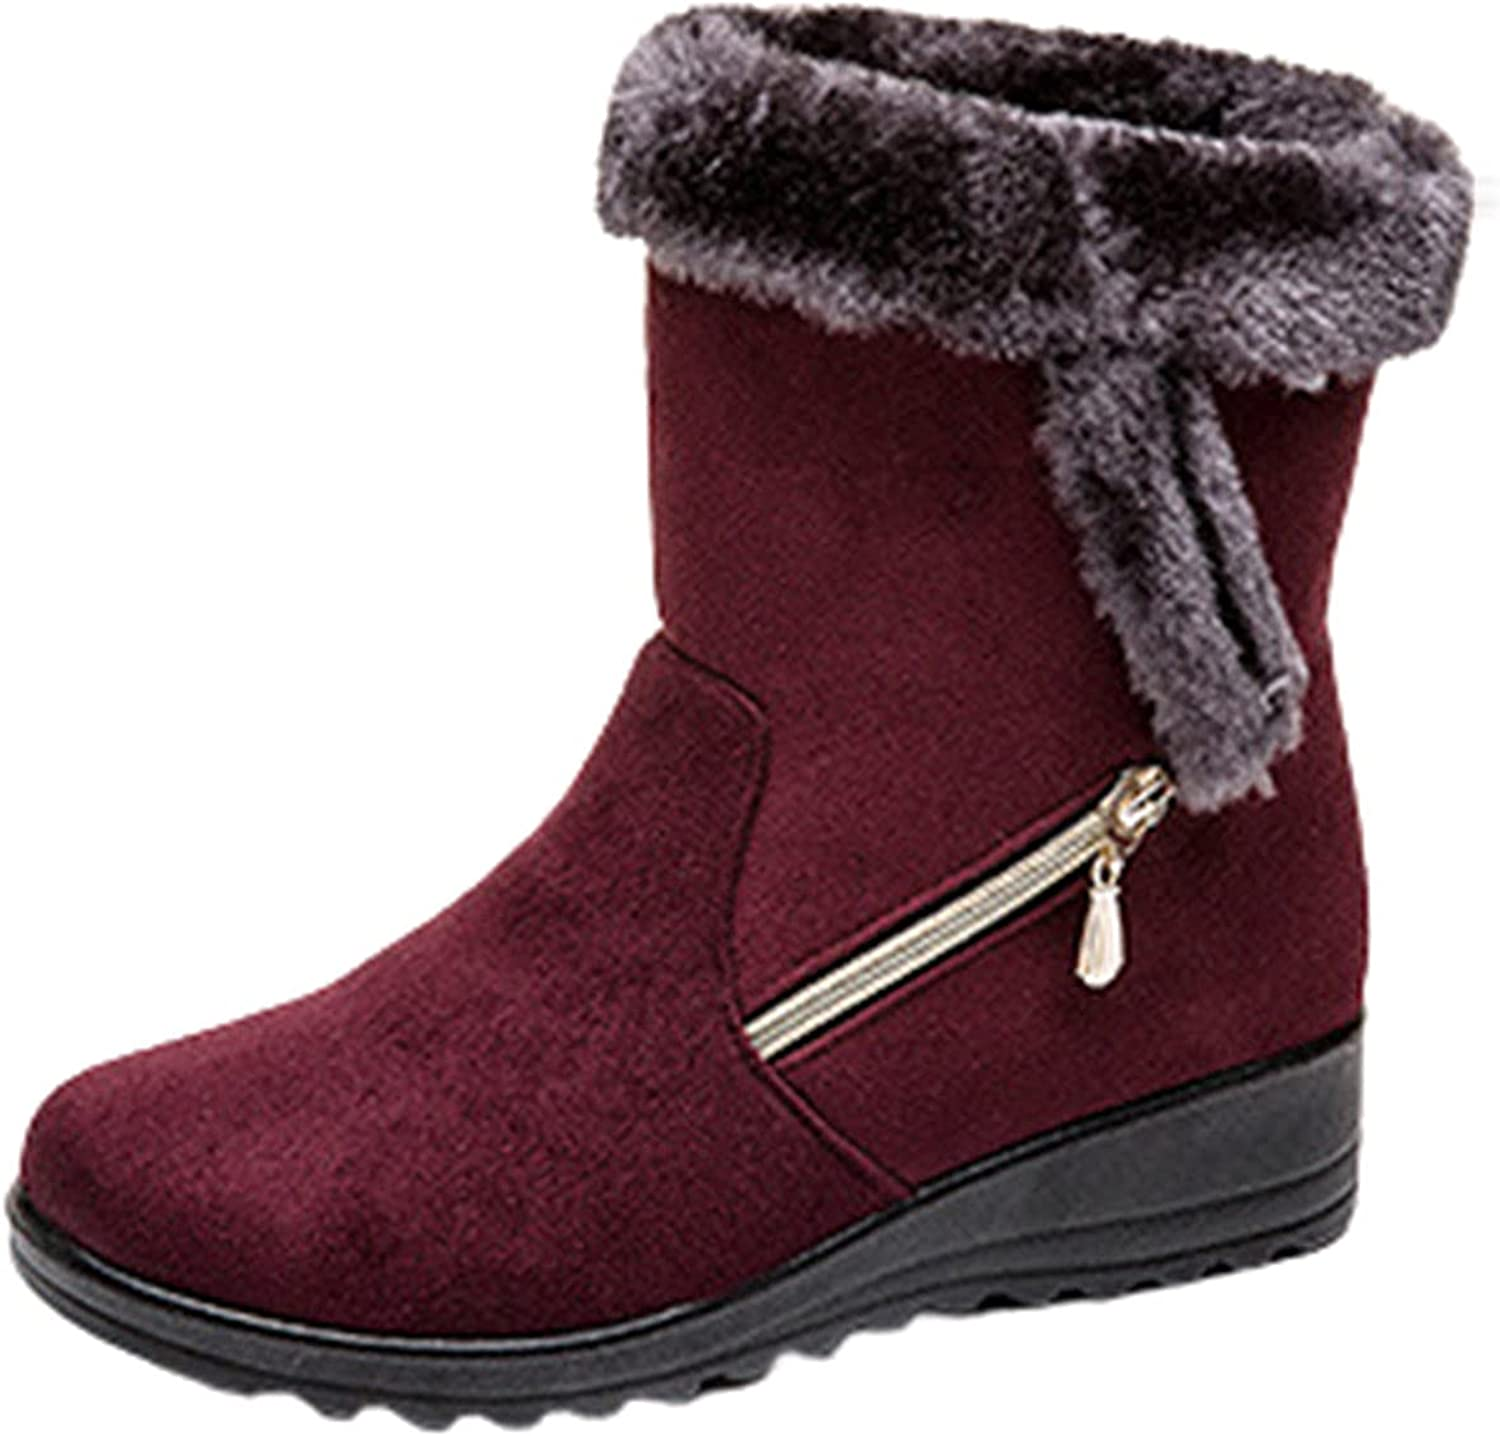 Women's Suede Boot Upper Zipper Warm Waterproof Insulated Durable Shoes Faux Fur Flat Boots For Snow Skid Shoes